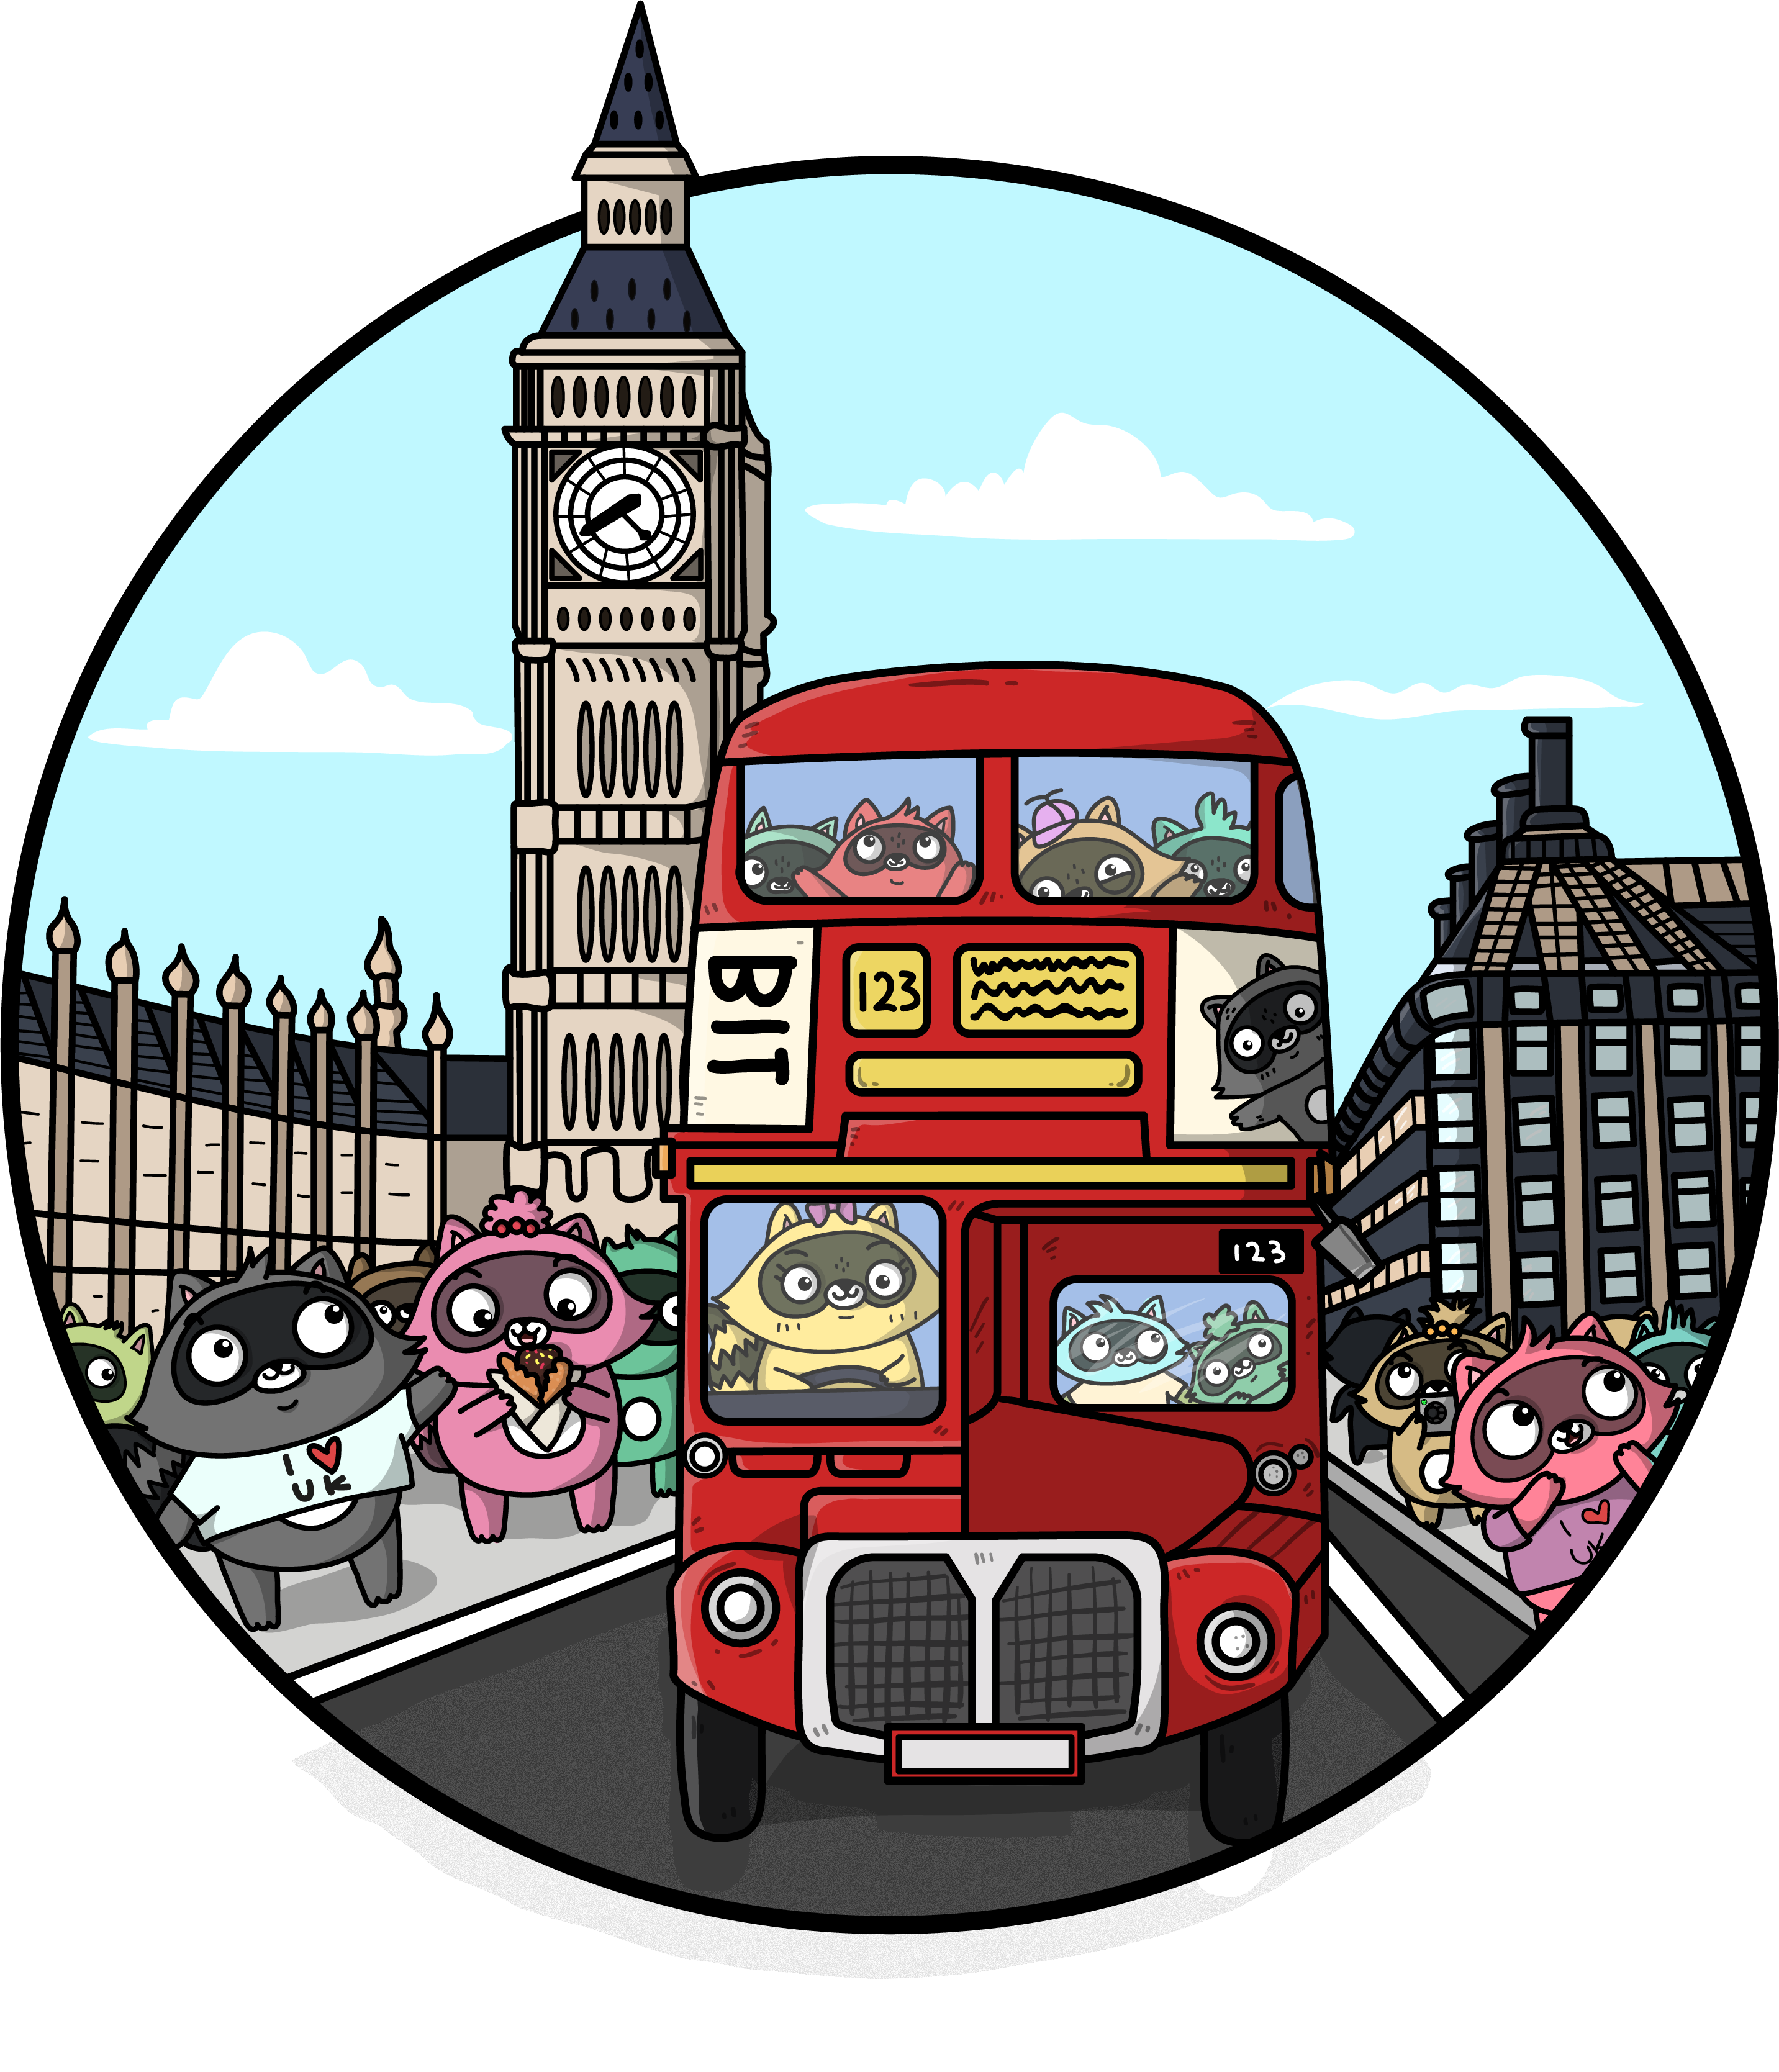 A drawing of Bit the Raccoon in London, featuring a red double decker bus and Big Ben.